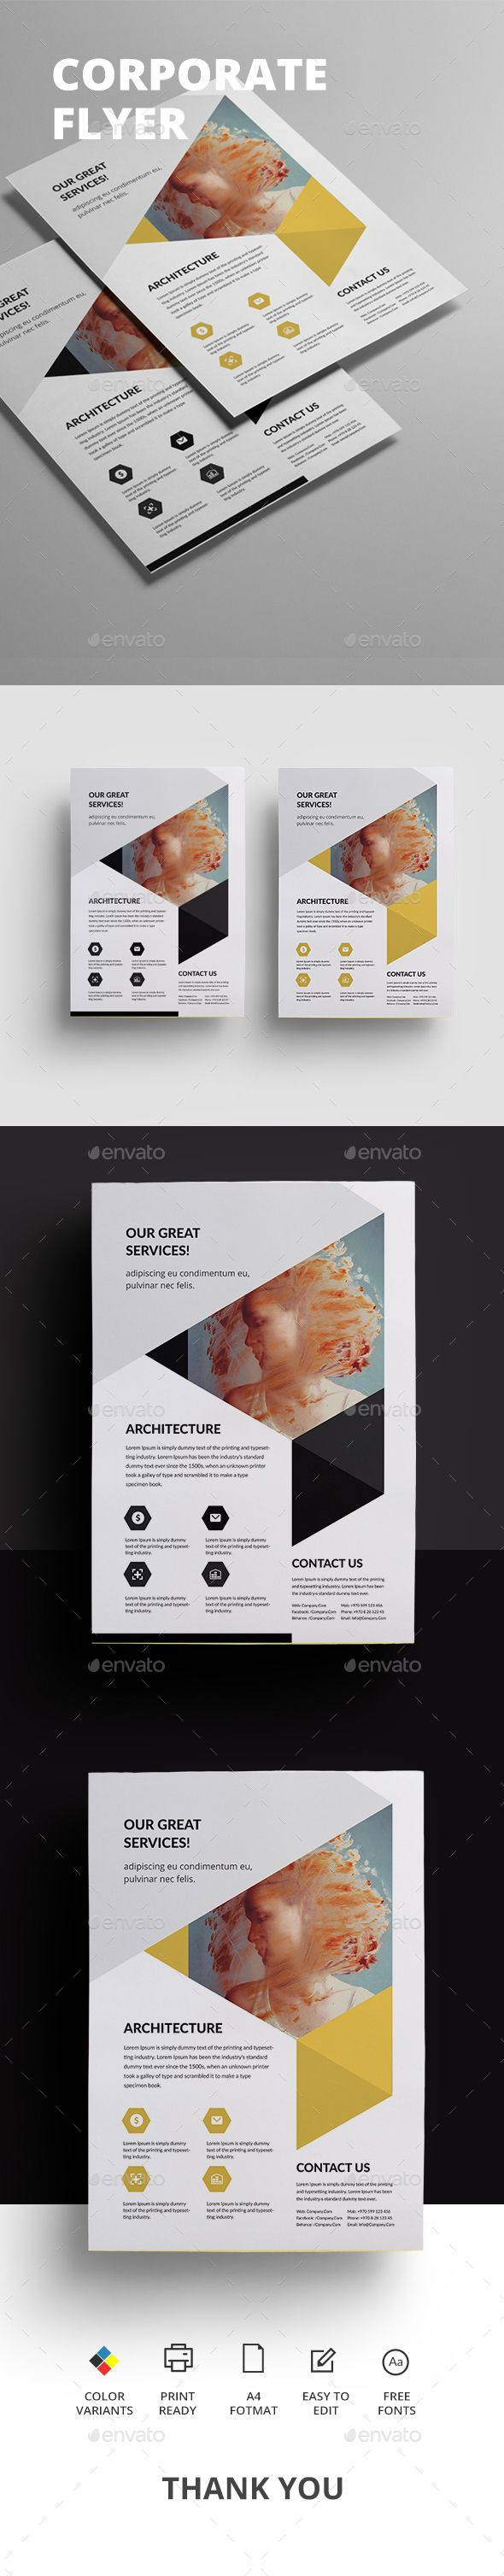 Corporate Flyer Design Template - Corporate Flyers Design Template PSD. Download here: https://graphicriver.net/item/corporate-flyer/19172485?ref=yinkira